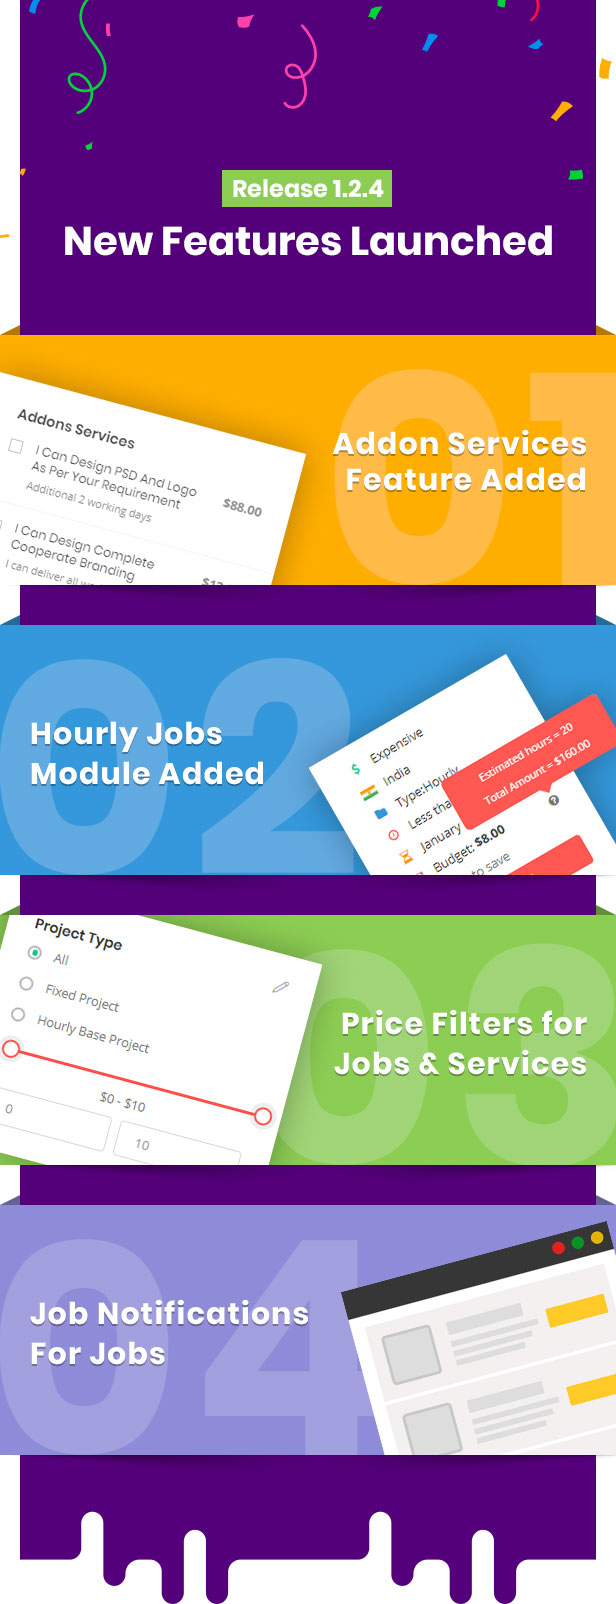 Workreap - Freelance Marketplace and Directory WordPress Theme - 14